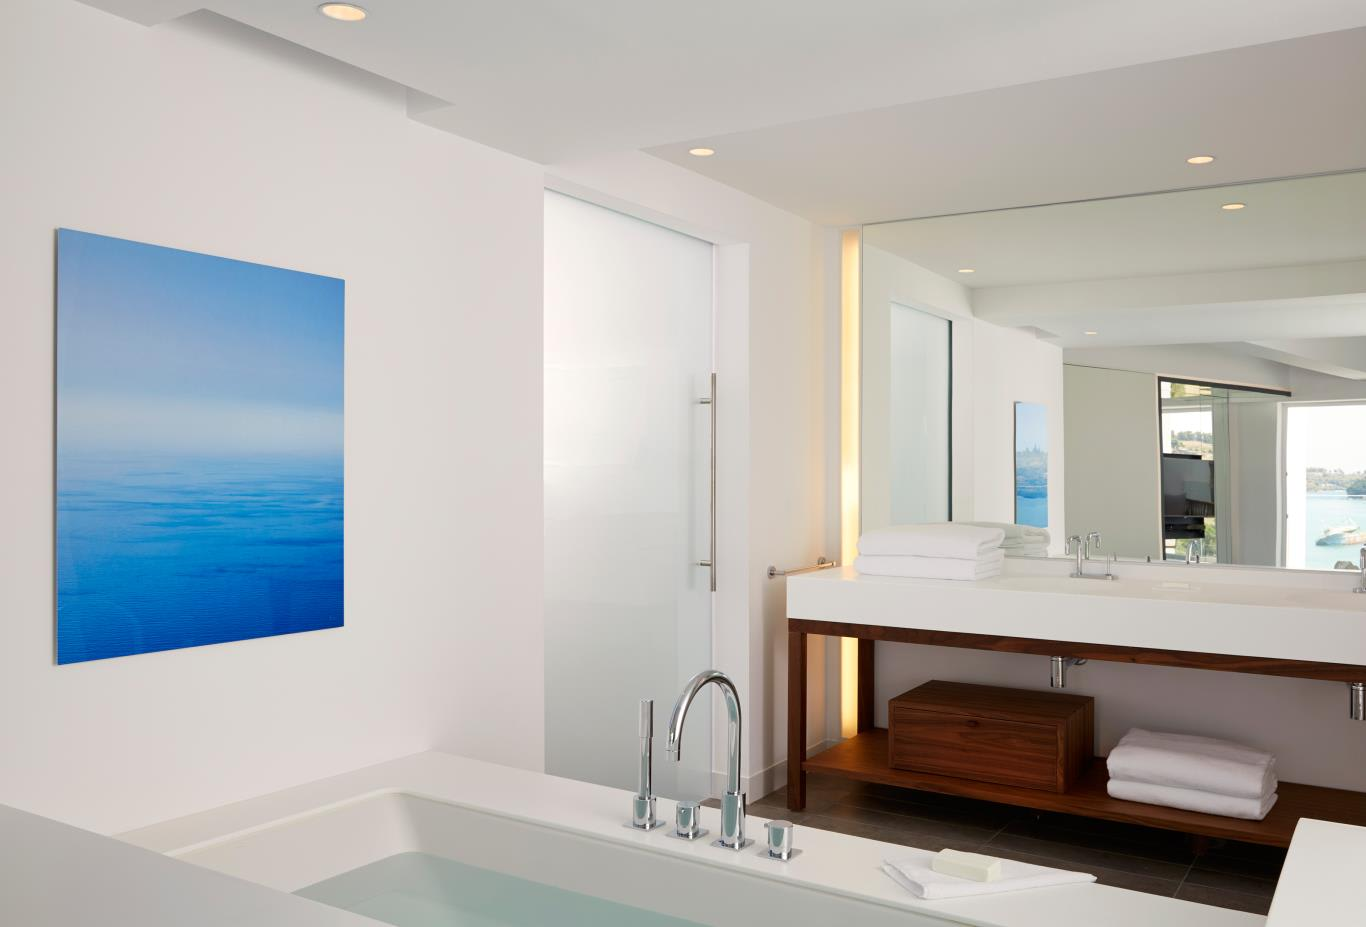 Luxx Room & Luxx Suite bathroom